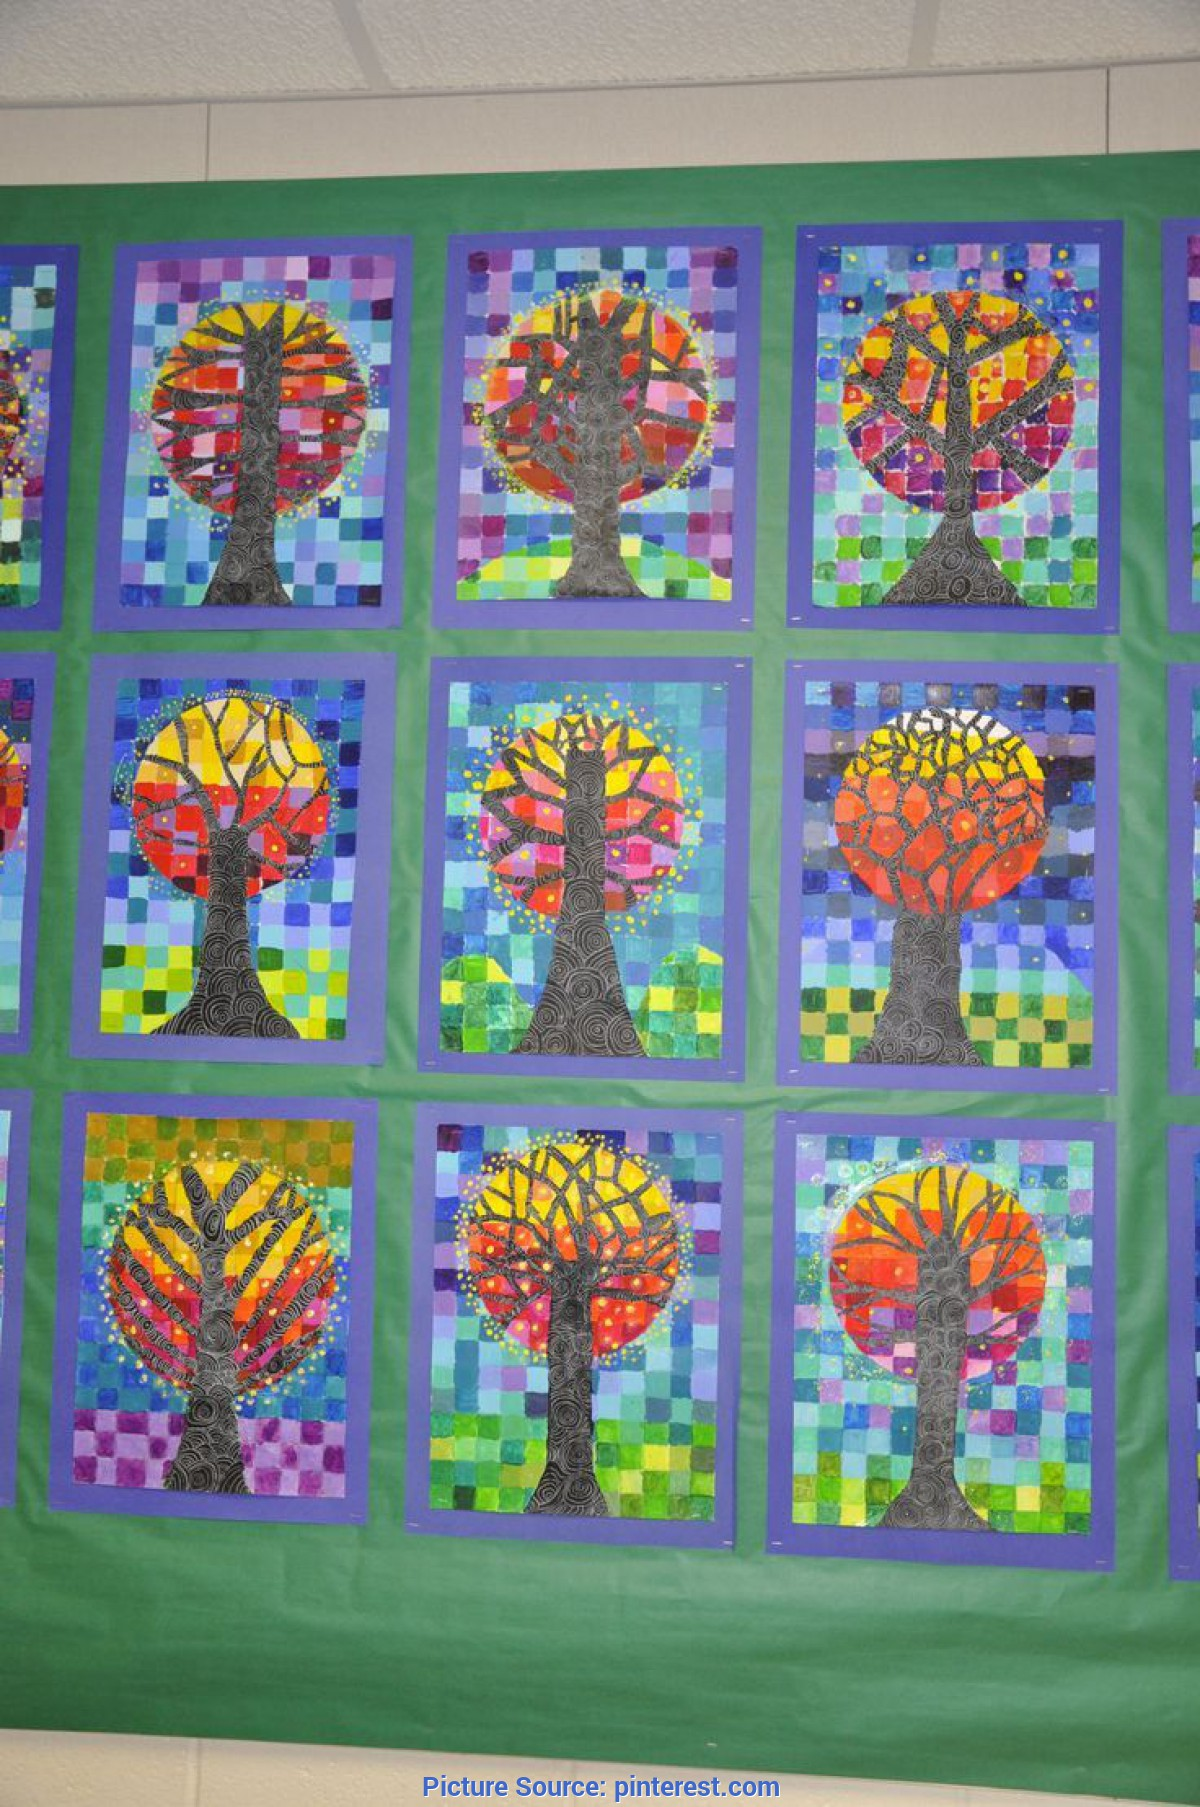 Typical Grade School Art Projects Image Result For Fall Art Projects For Elementary Students   Ar